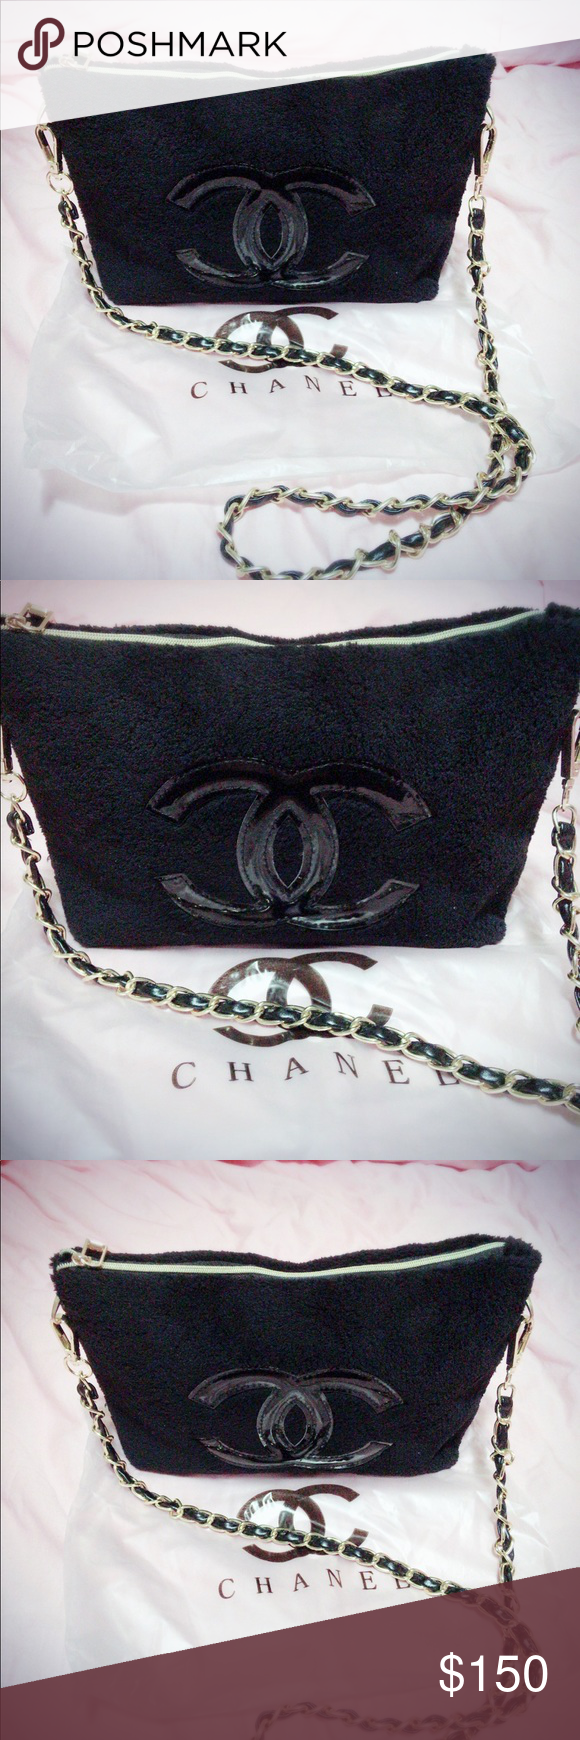 c114b2e180b5 Authentic CHANEL beauty VIP gift bag CHANEL Black Velvet Makeup Bag with  Gold Detachable Chain Cosmetic